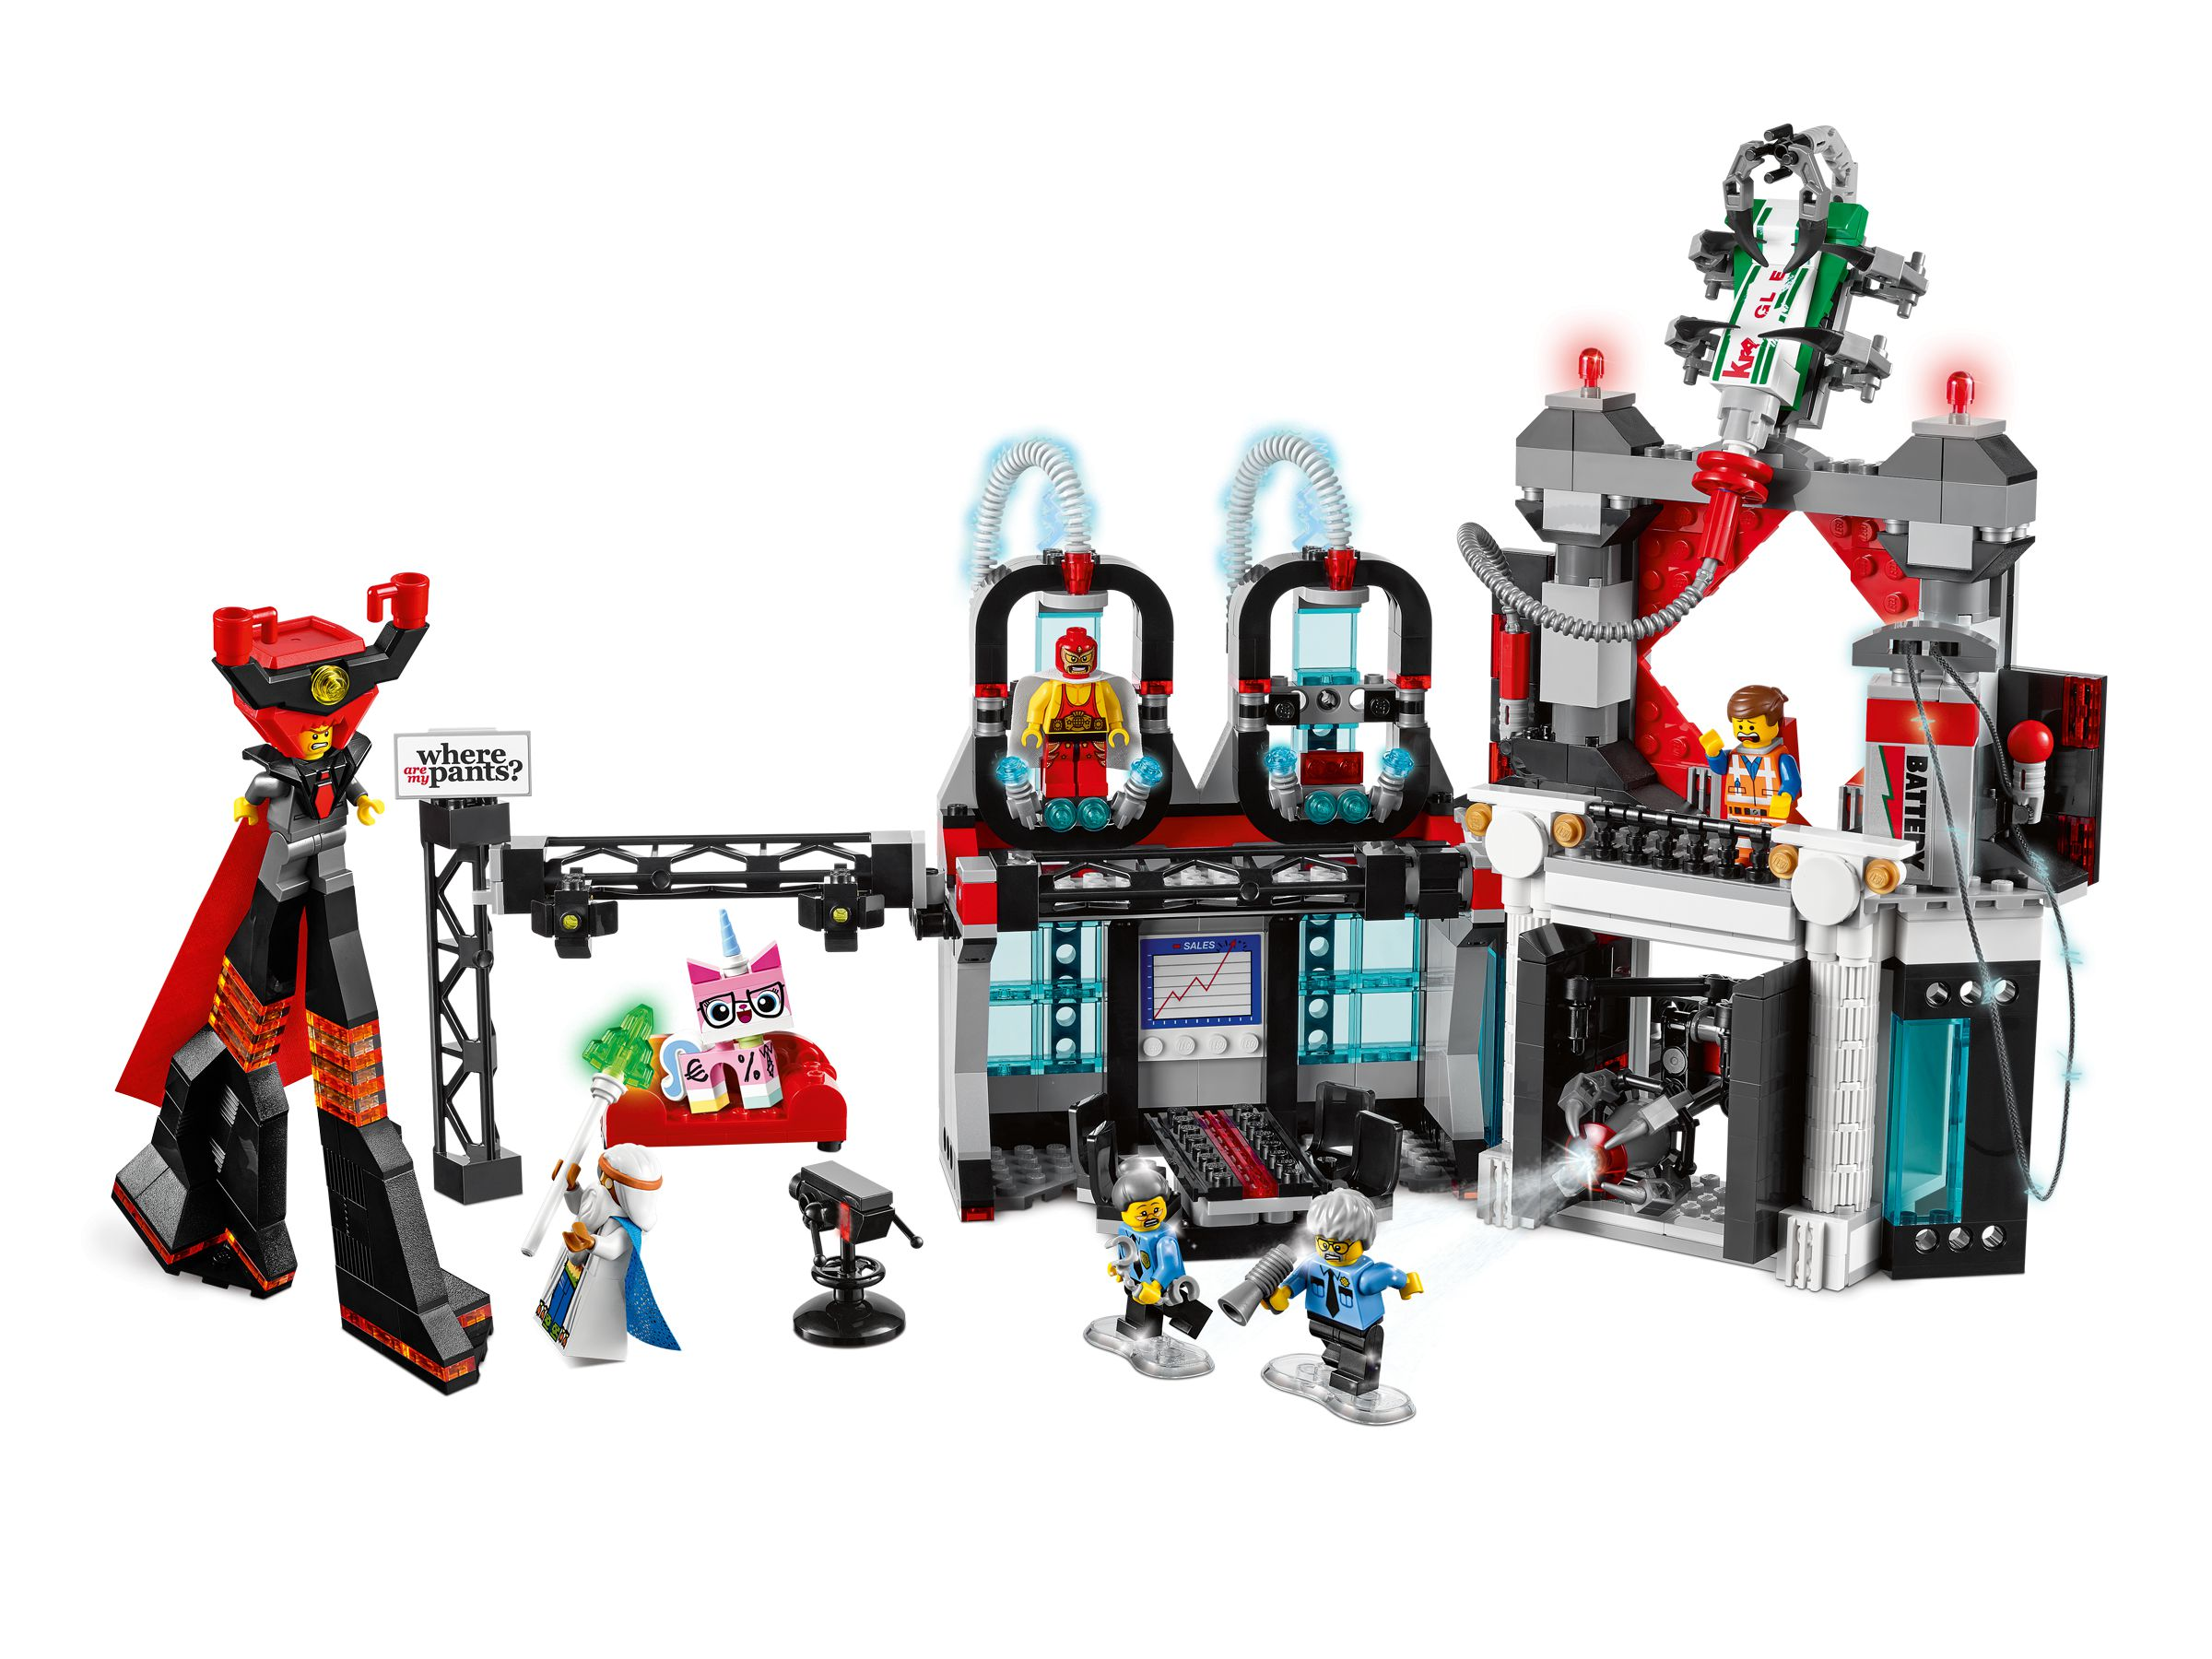 LEGO The LEGO Movie 70809 Lord Business' Hauptzentrale LEGO_70809.jpg